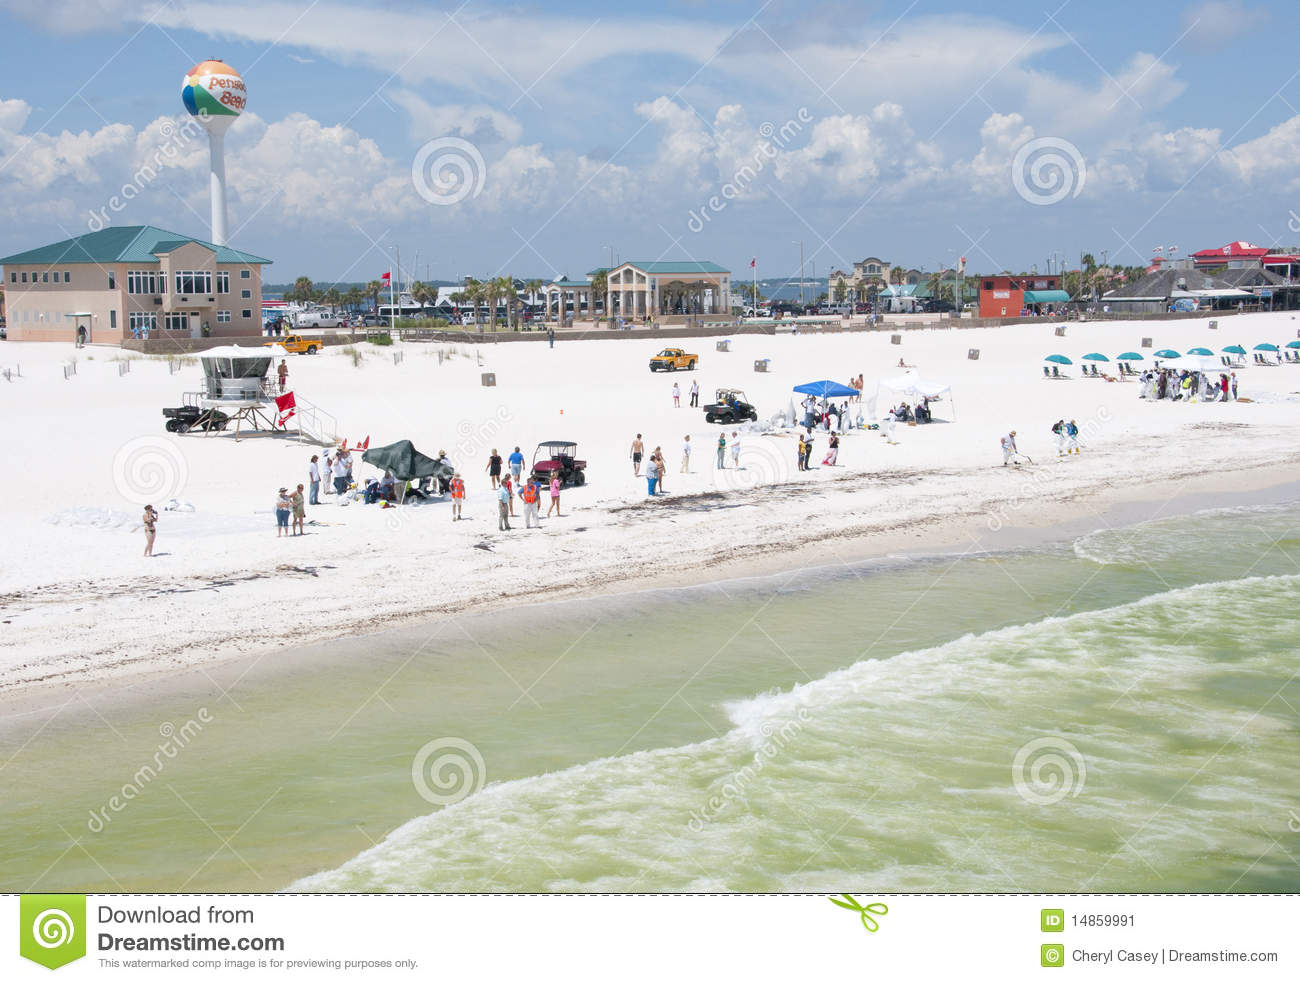 Oil workers replace tourists on Pensacola Beach